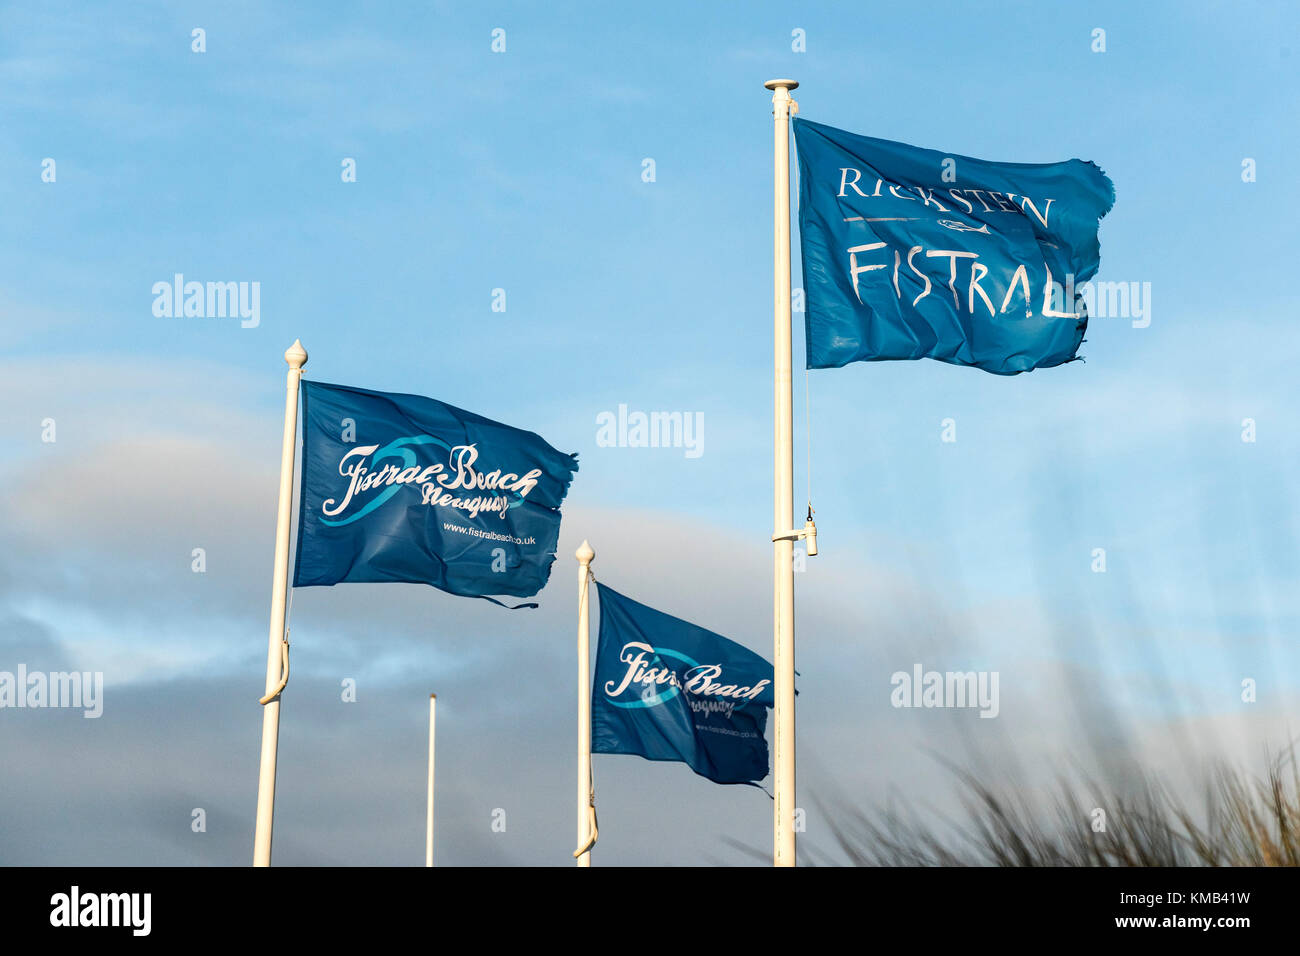 Flags advertising Rick Stein and Fistral Beach in Newquay Cornwall UK. - Stock Image